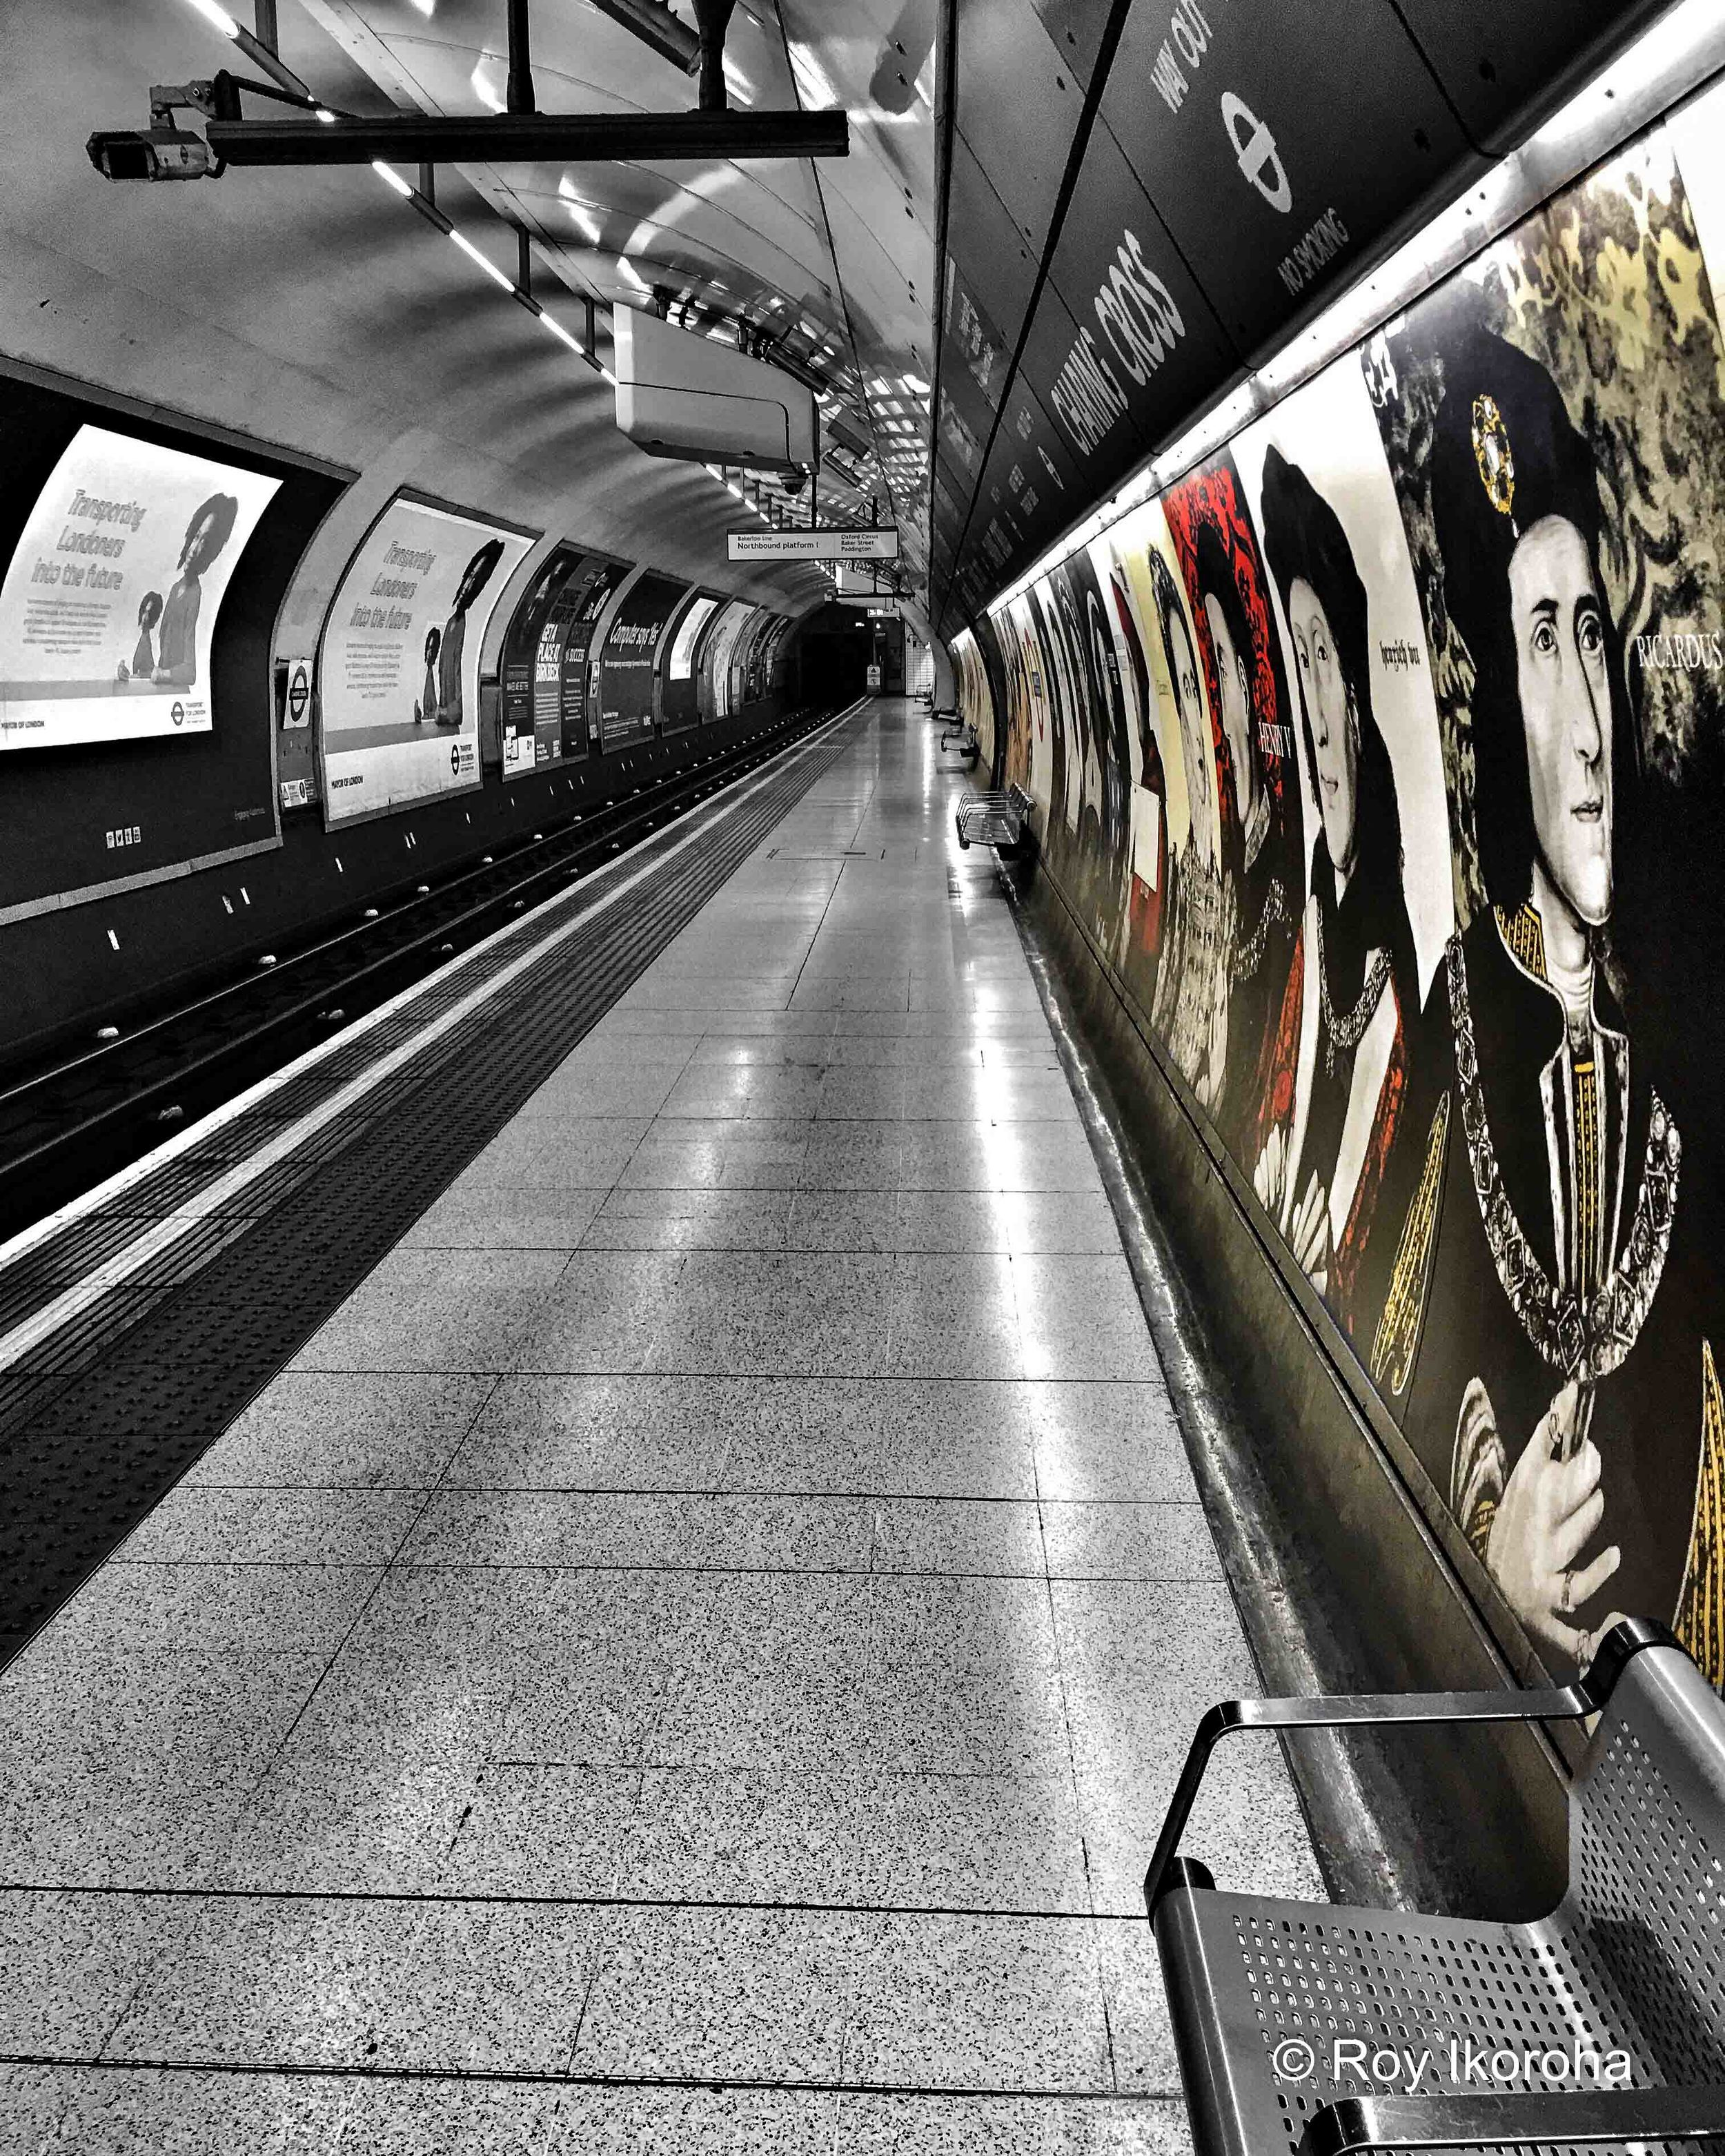 Along the platform at Charing Cross tube station, London